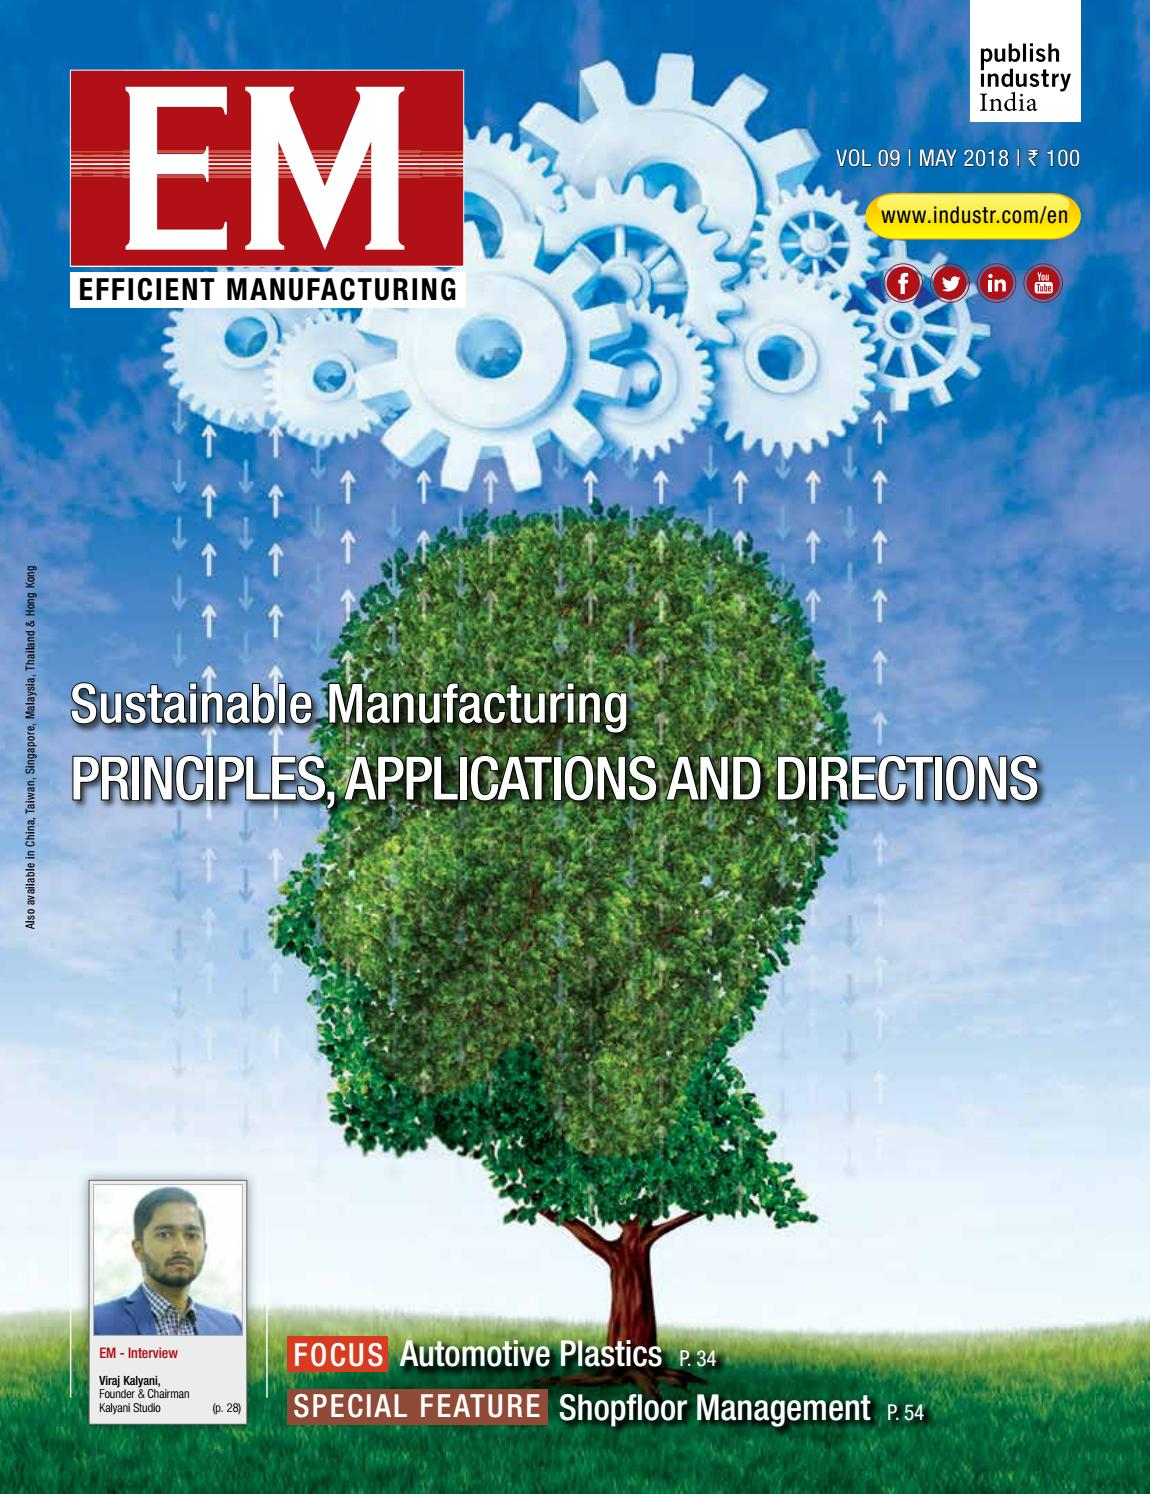 EM May 2018 by publish-industry India - issuu